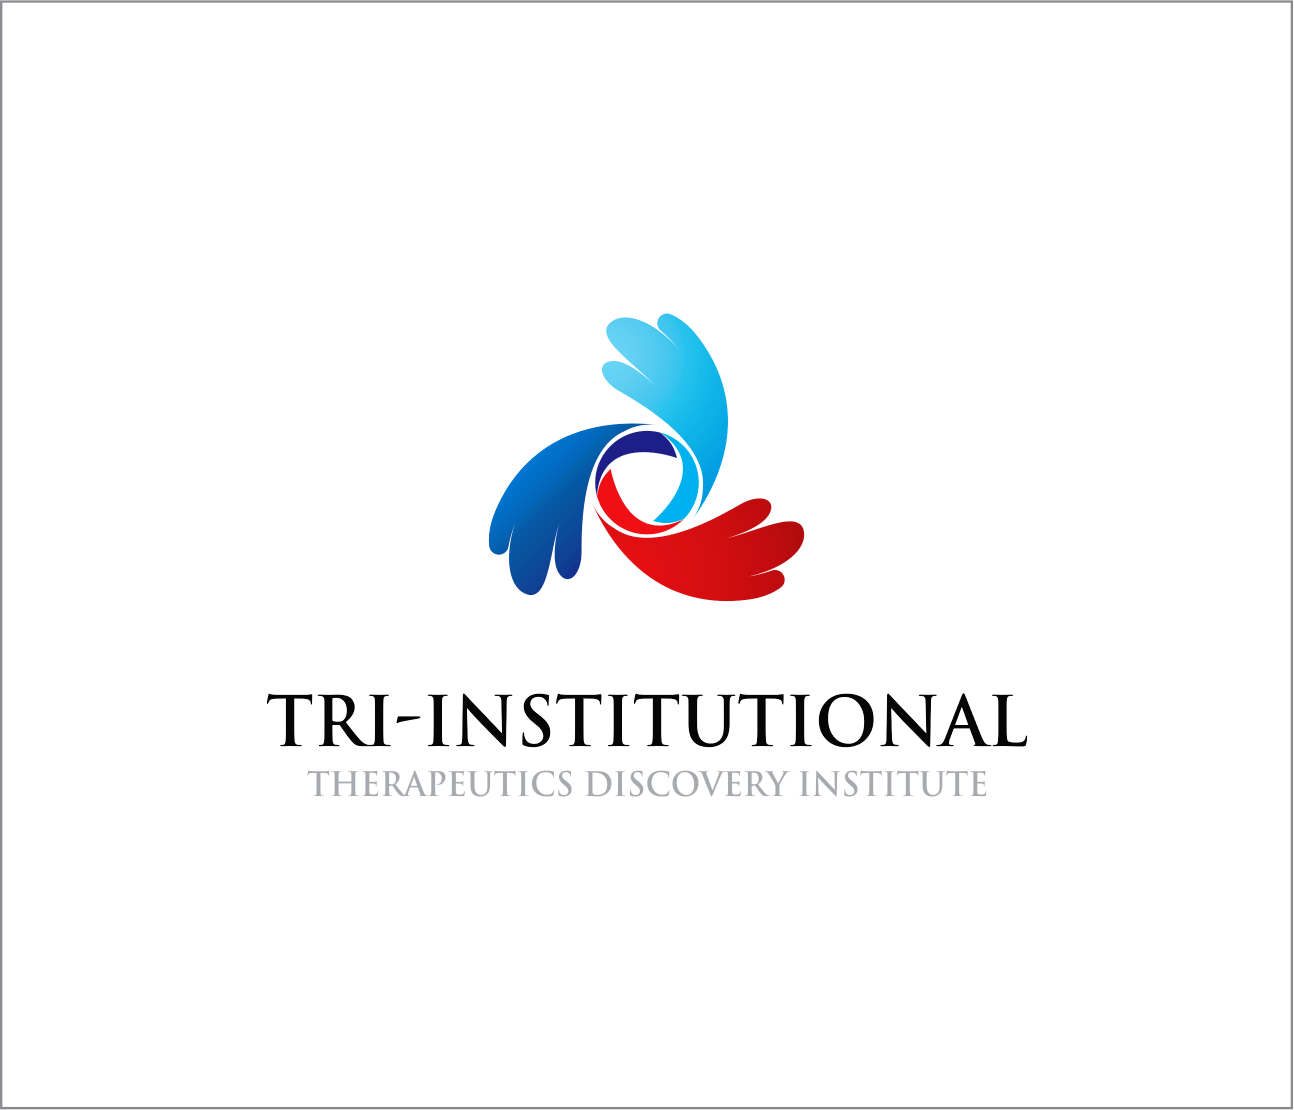 Logo Design by Armada Jamaluddin - Entry No. 104 in the Logo Design Contest Inspiring Logo Design for Tri-Institutional Therapeutics Discovery Institute.